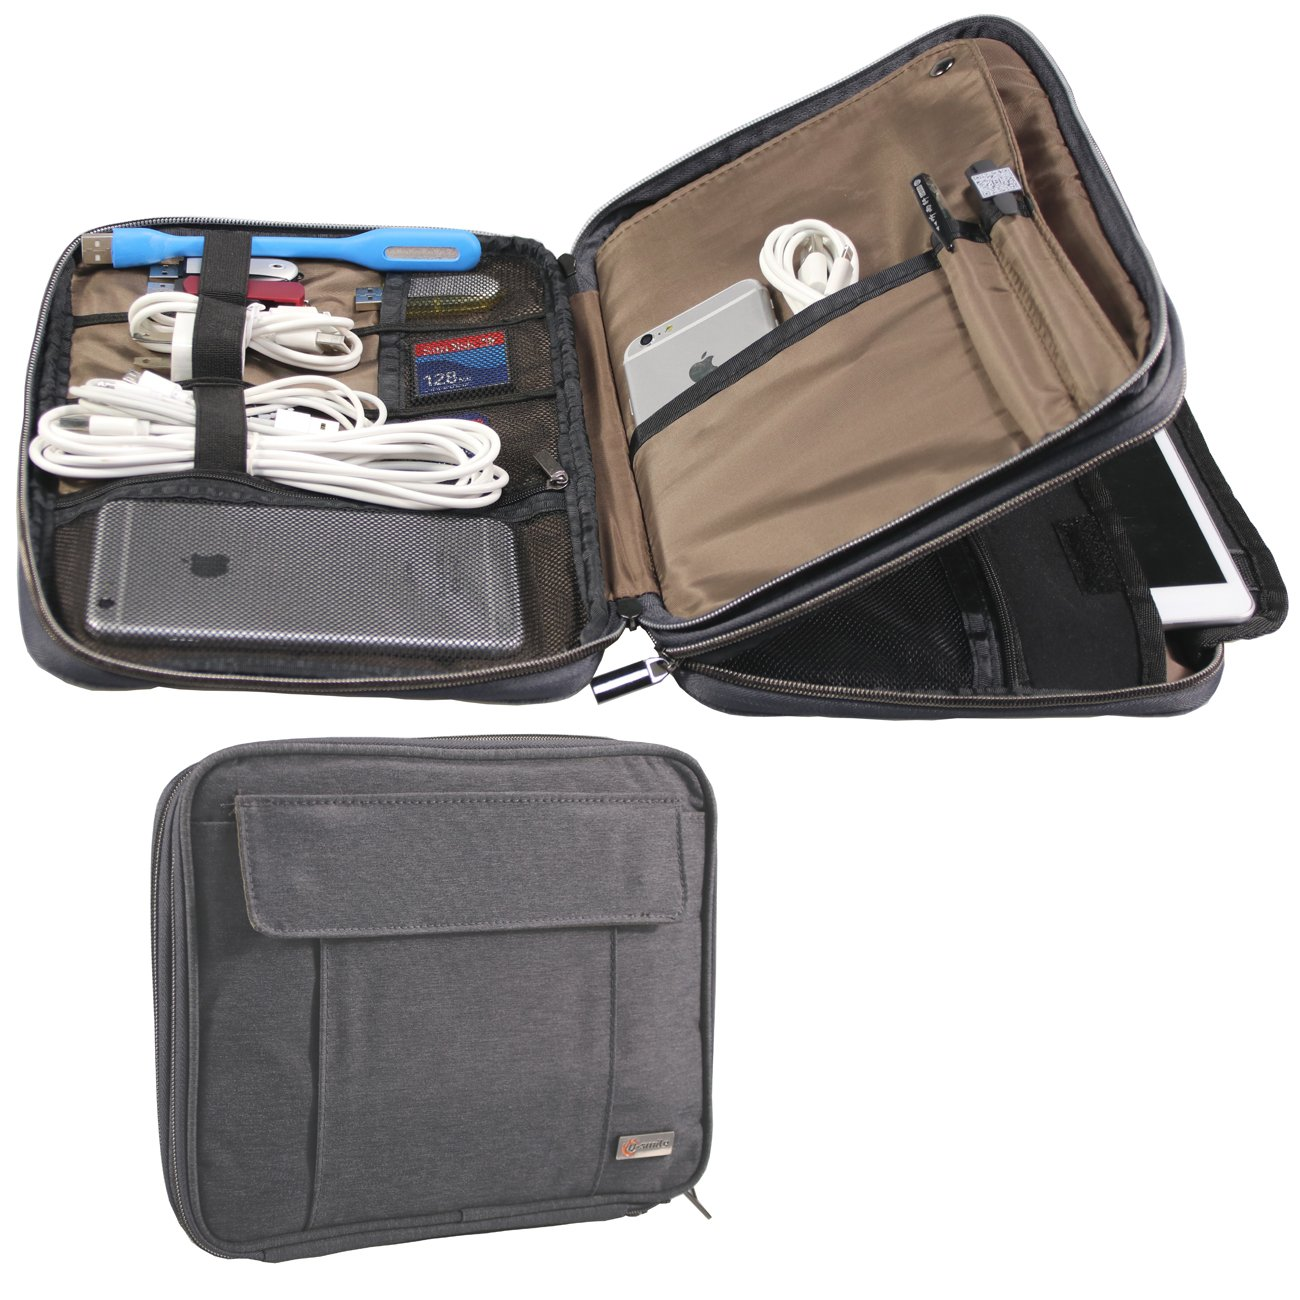 Q-Smile Travel Cable Organizer Double Layer, Water-resistance iPad Sleeve, Electronic Accessories Organizer for Cell Phones, USB Cable, SD Card, Hard Drive, Power Bank, Camera